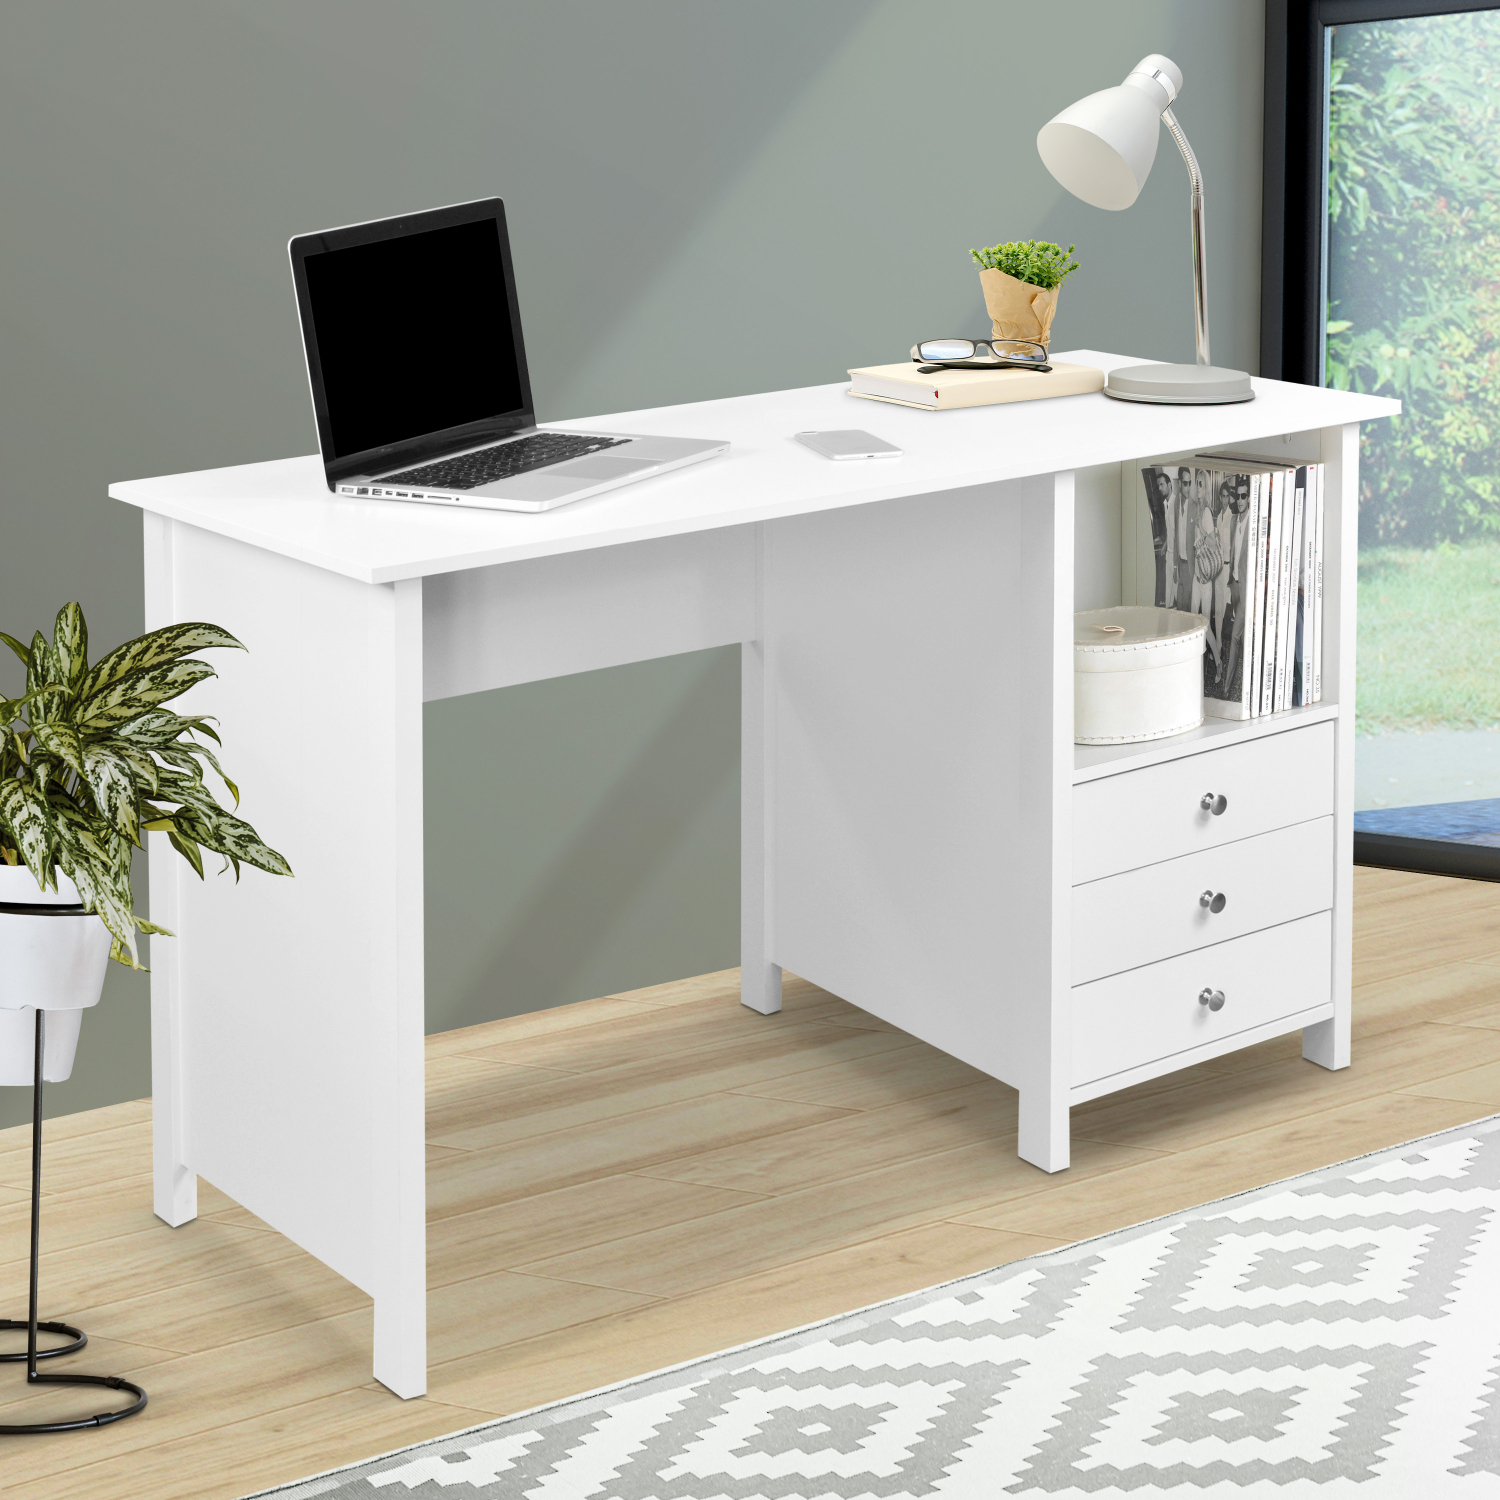 New Home Office Computer Writing Desk Drawer Storage Large Working Surface White 815764013315 Ebay